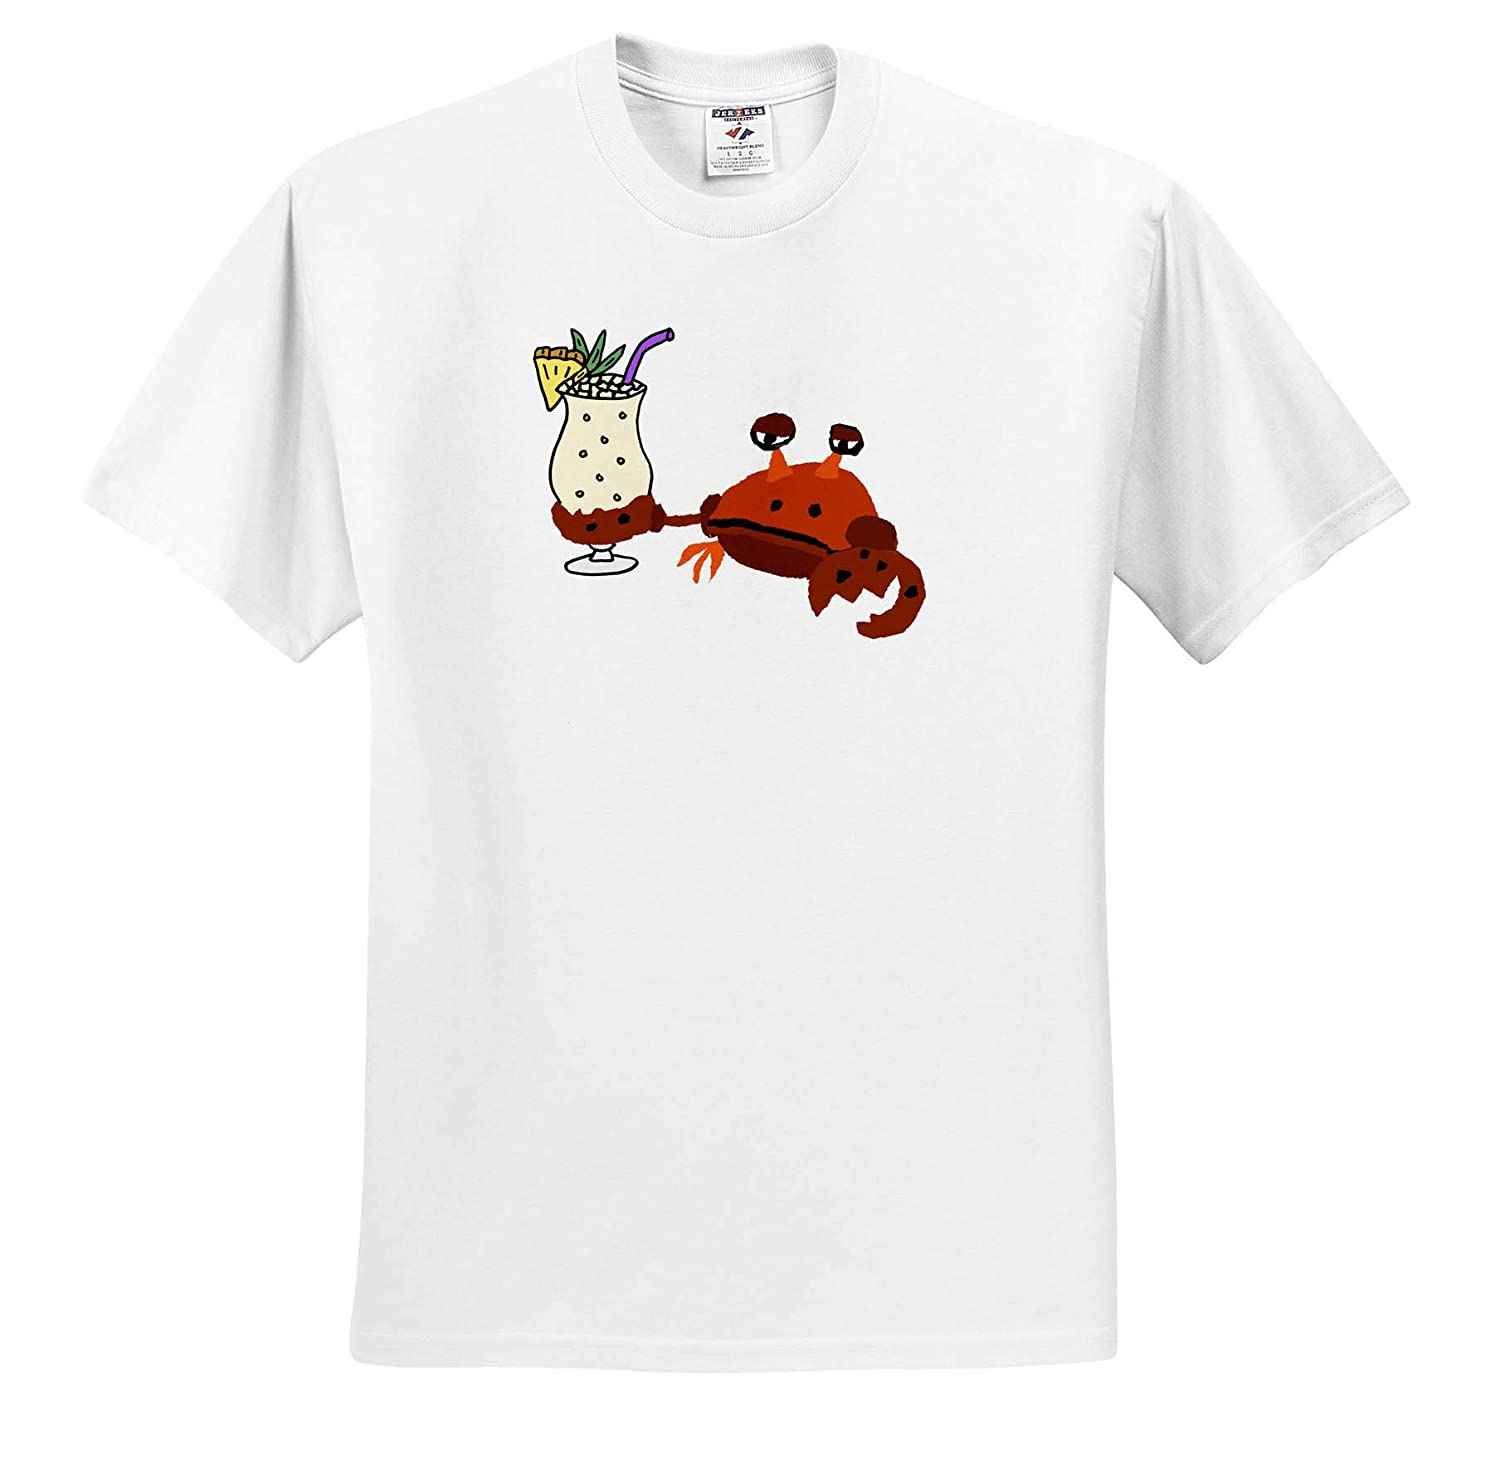 Adult T-Shirt XL 3dRose All Smiles Art Funny Cute Crab Drinking Pina Colada Beach Cartoon ts/_316999 Drinking